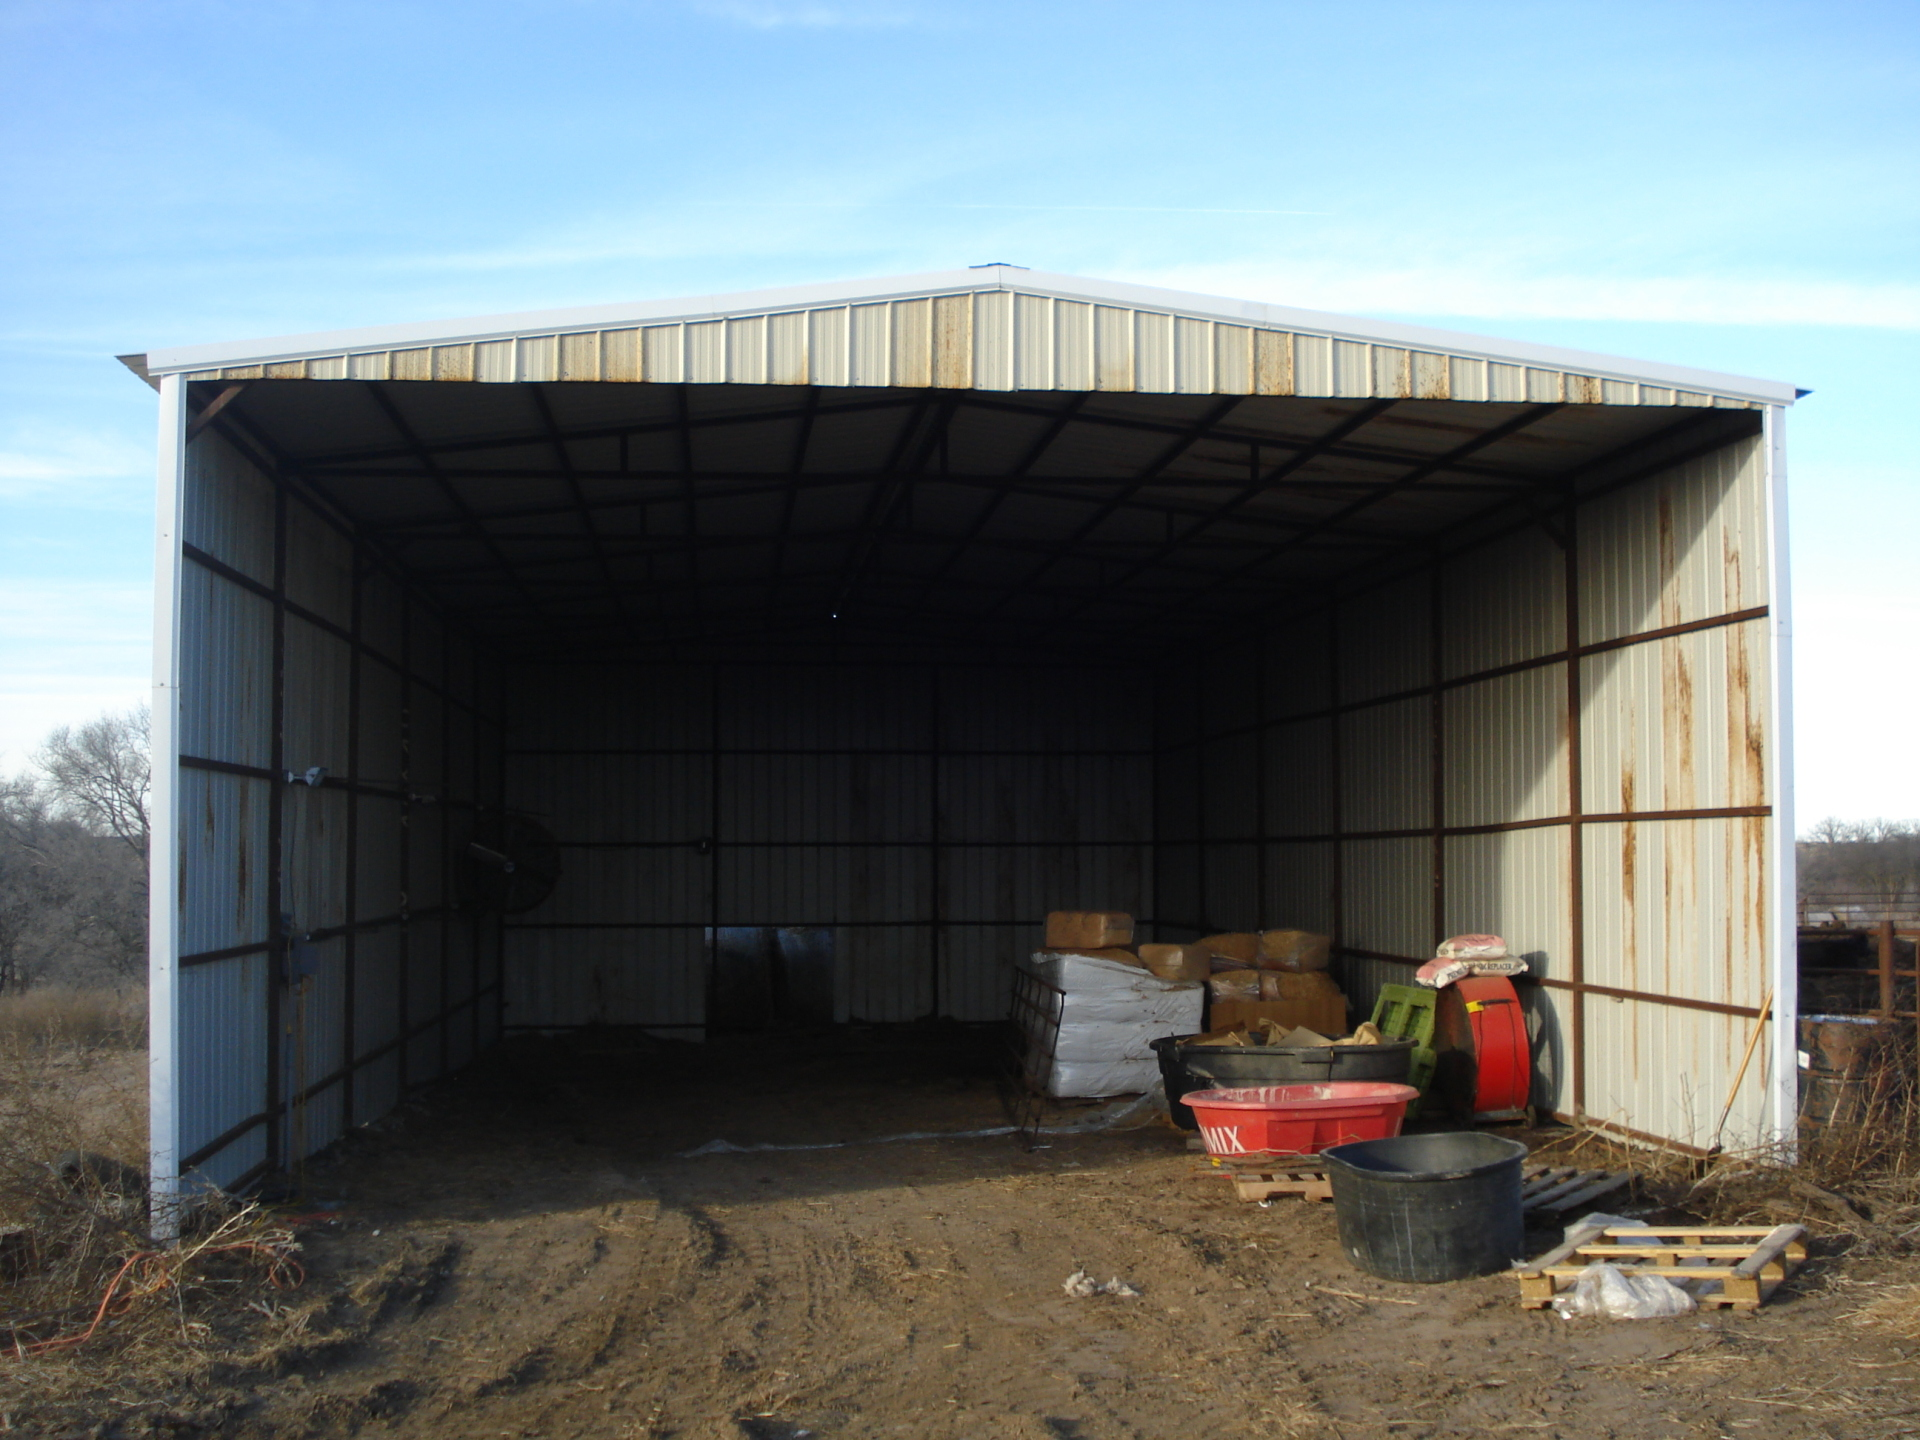 2nd open shed